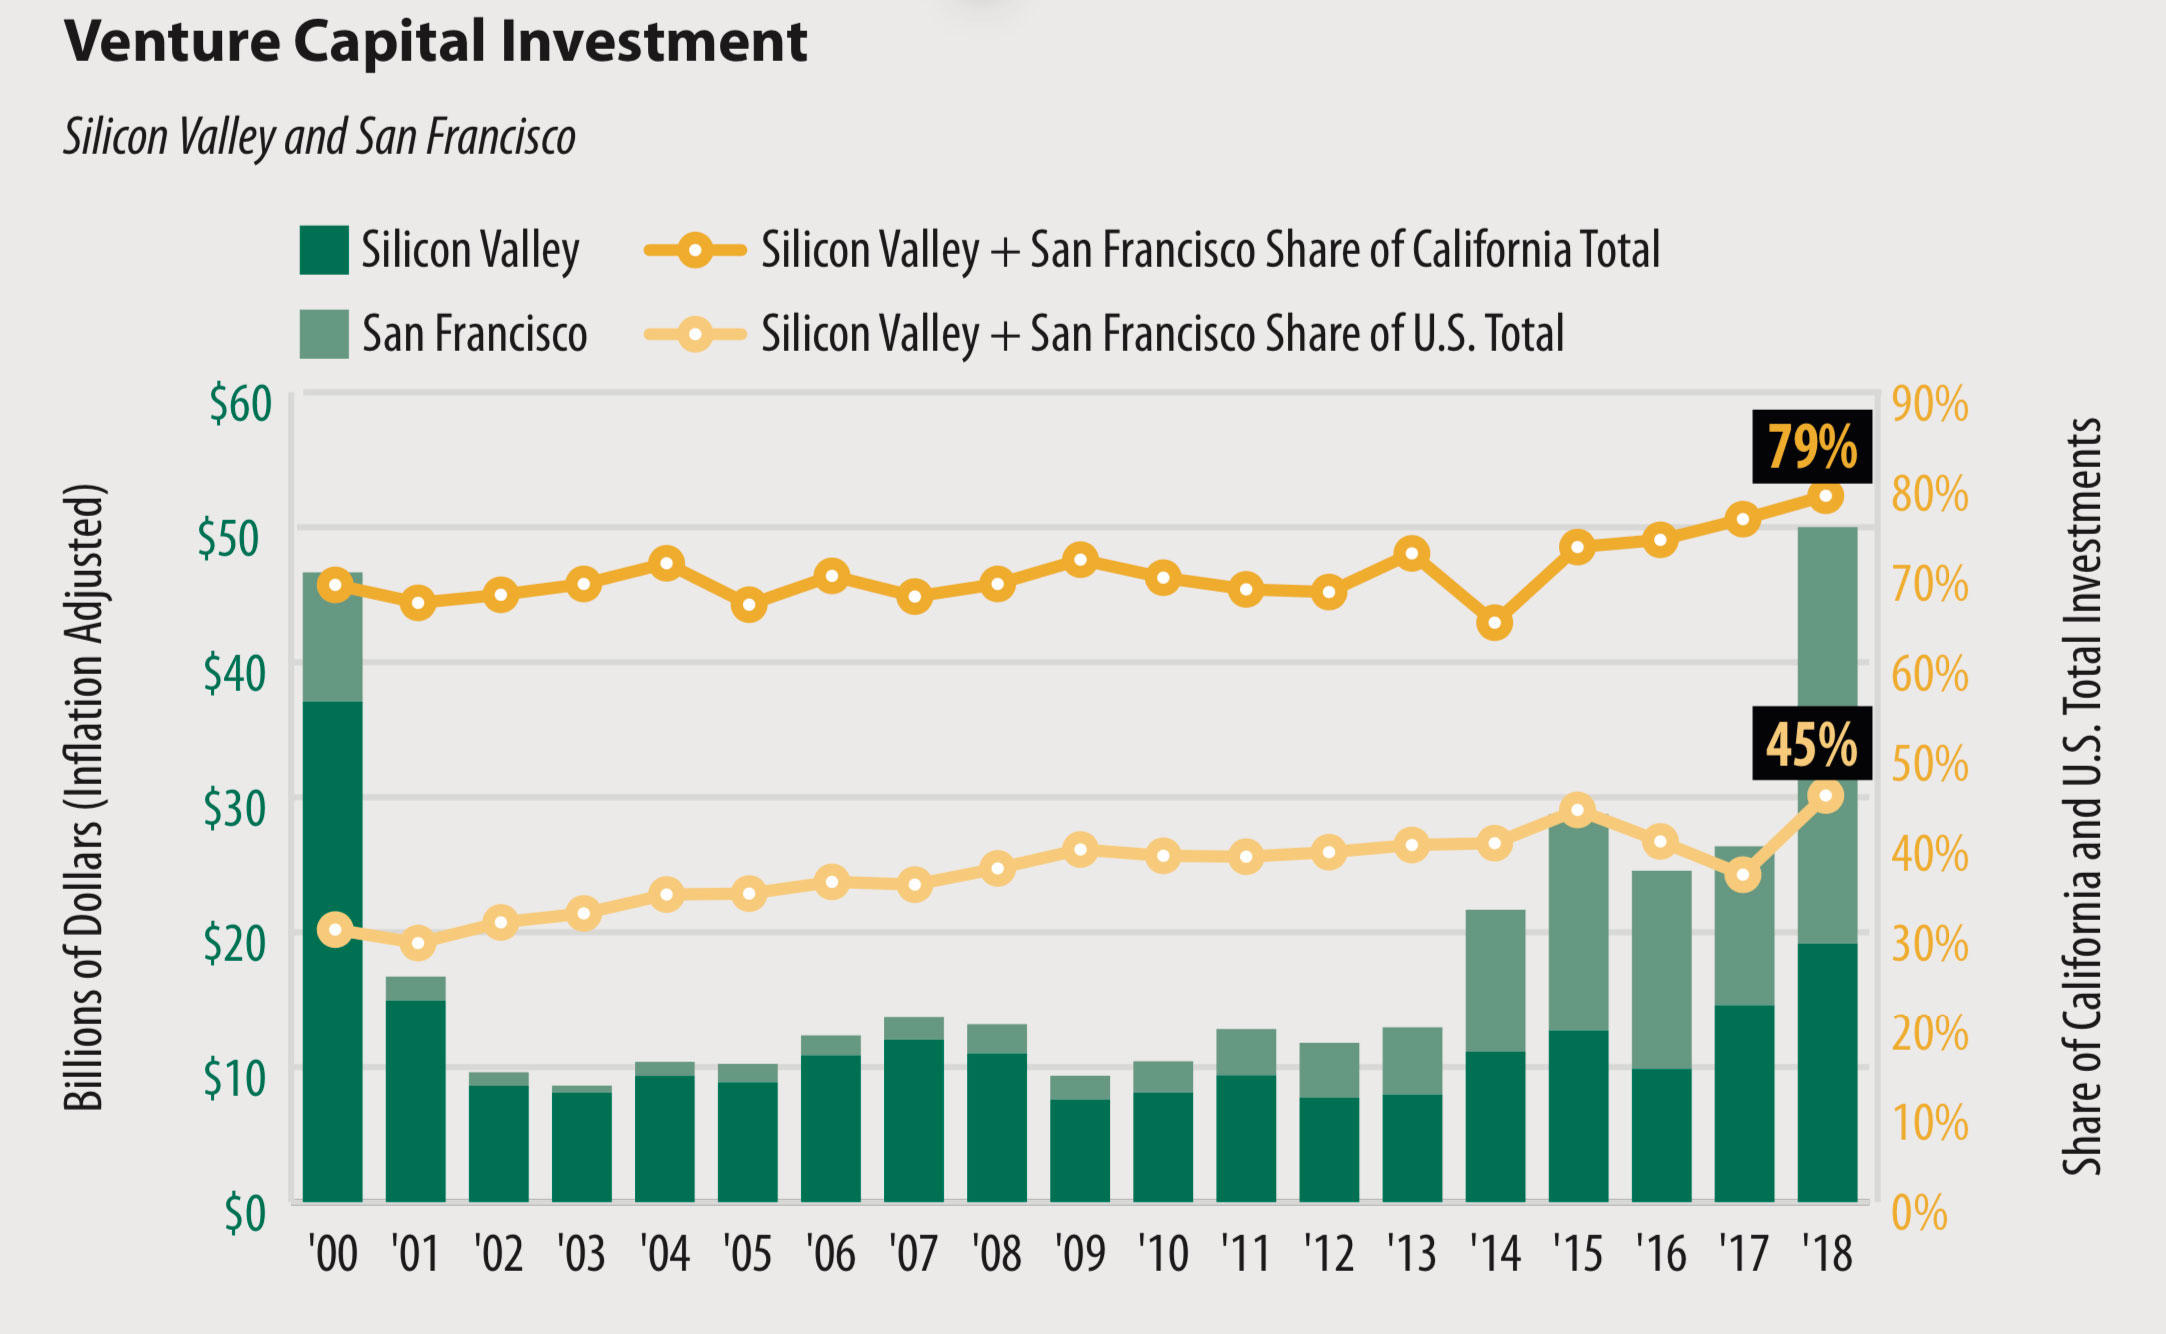 Venture capital exploded in Silicon Valley and San Francisco in 2018.